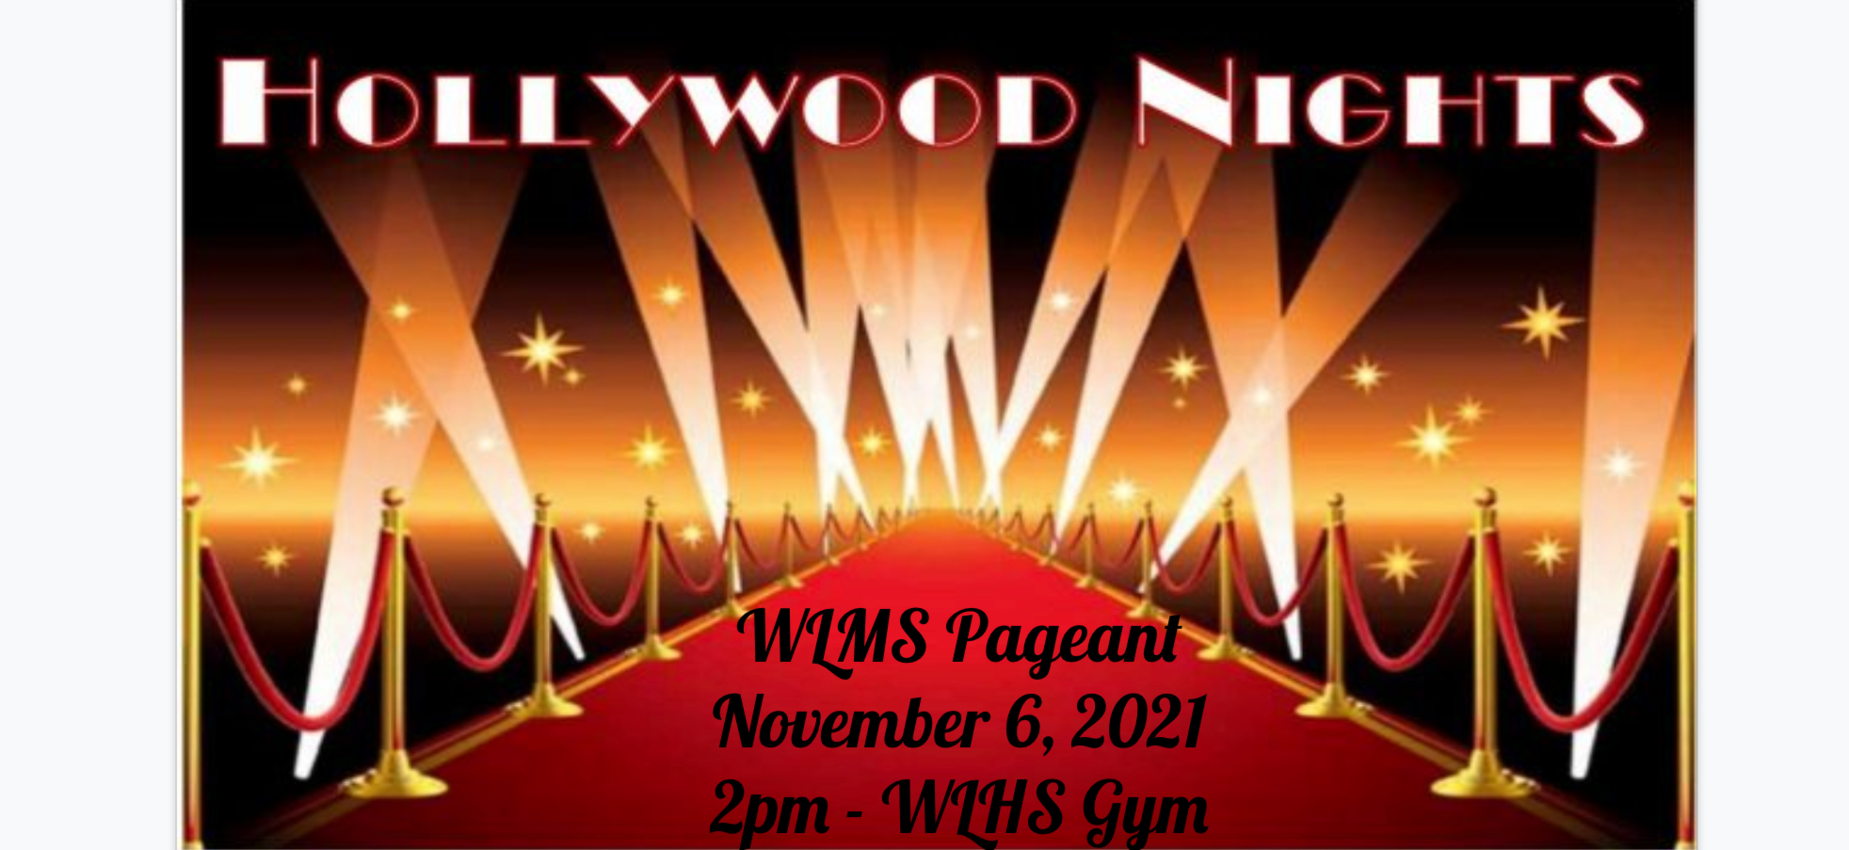 Hollywood Nights: WLMS pageant will be November 6th at 2pm in the WLHS gym